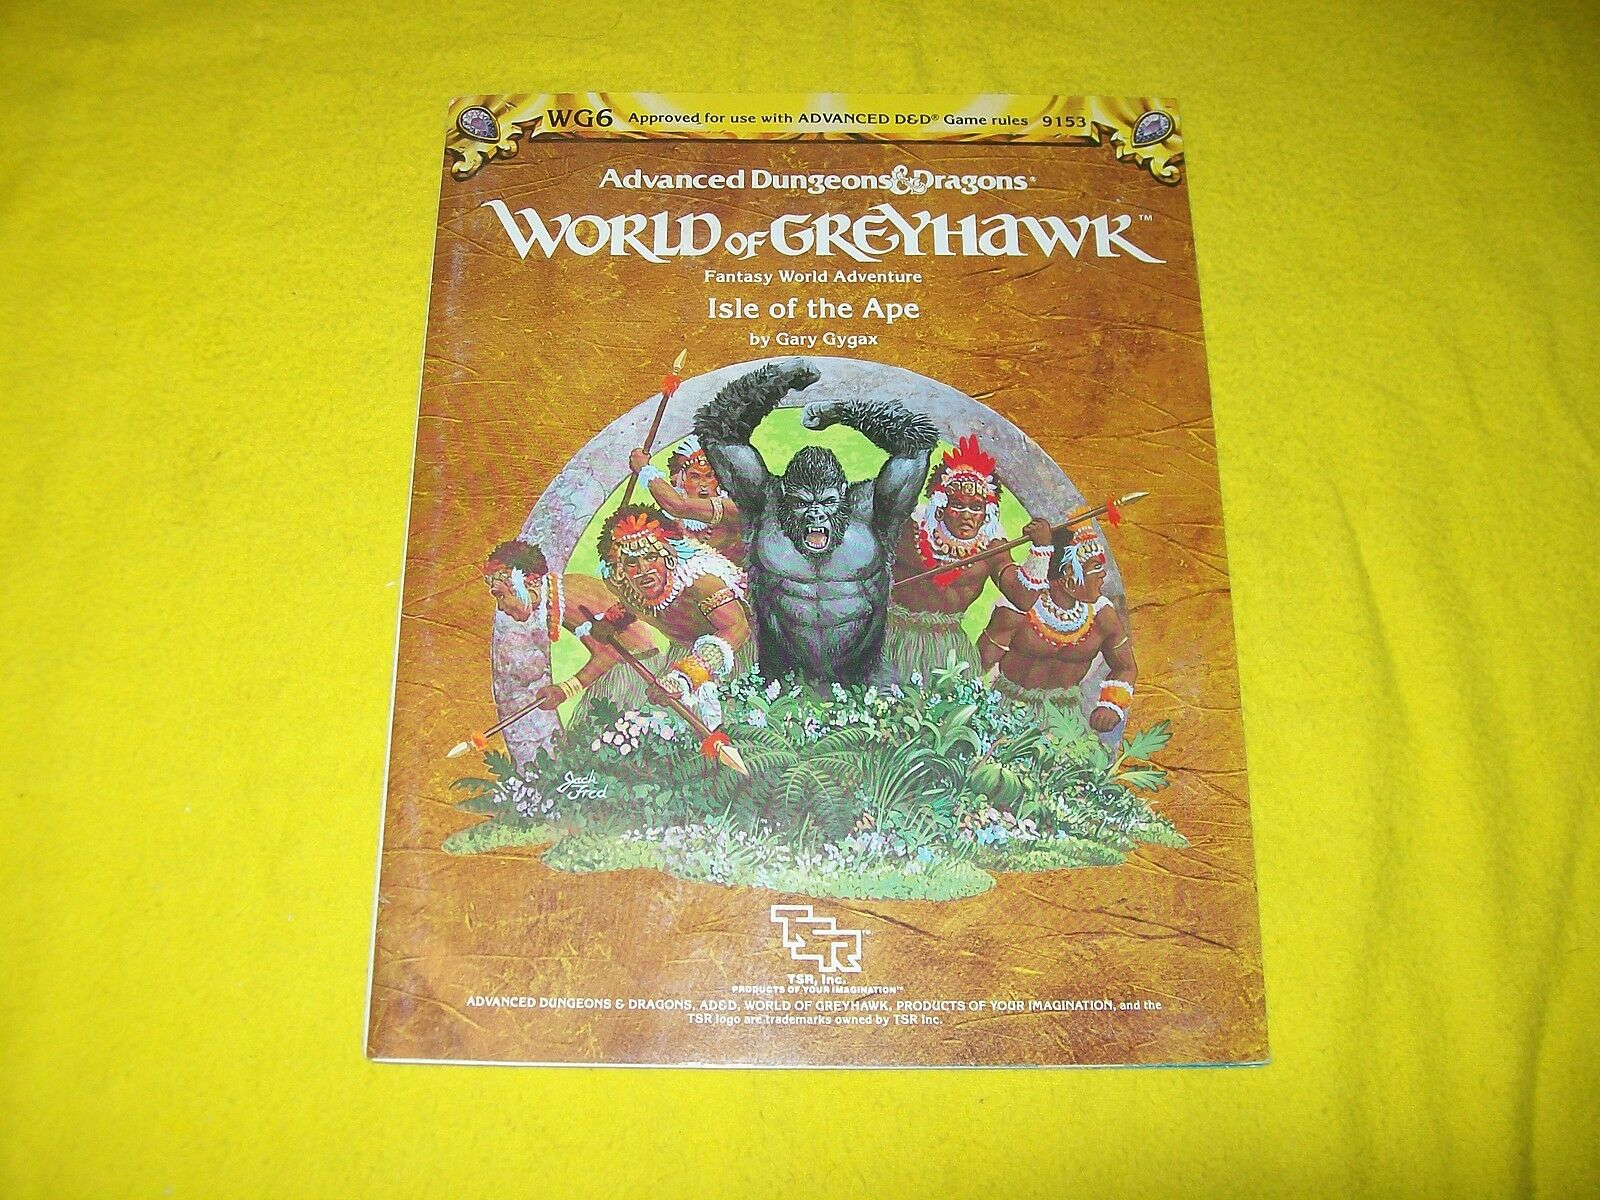 WG6 ISLE OF THE APE DUNGEONS & DRAGONS AD&D GREYHAWK TSR 9153 2 MODULE WITH MAP